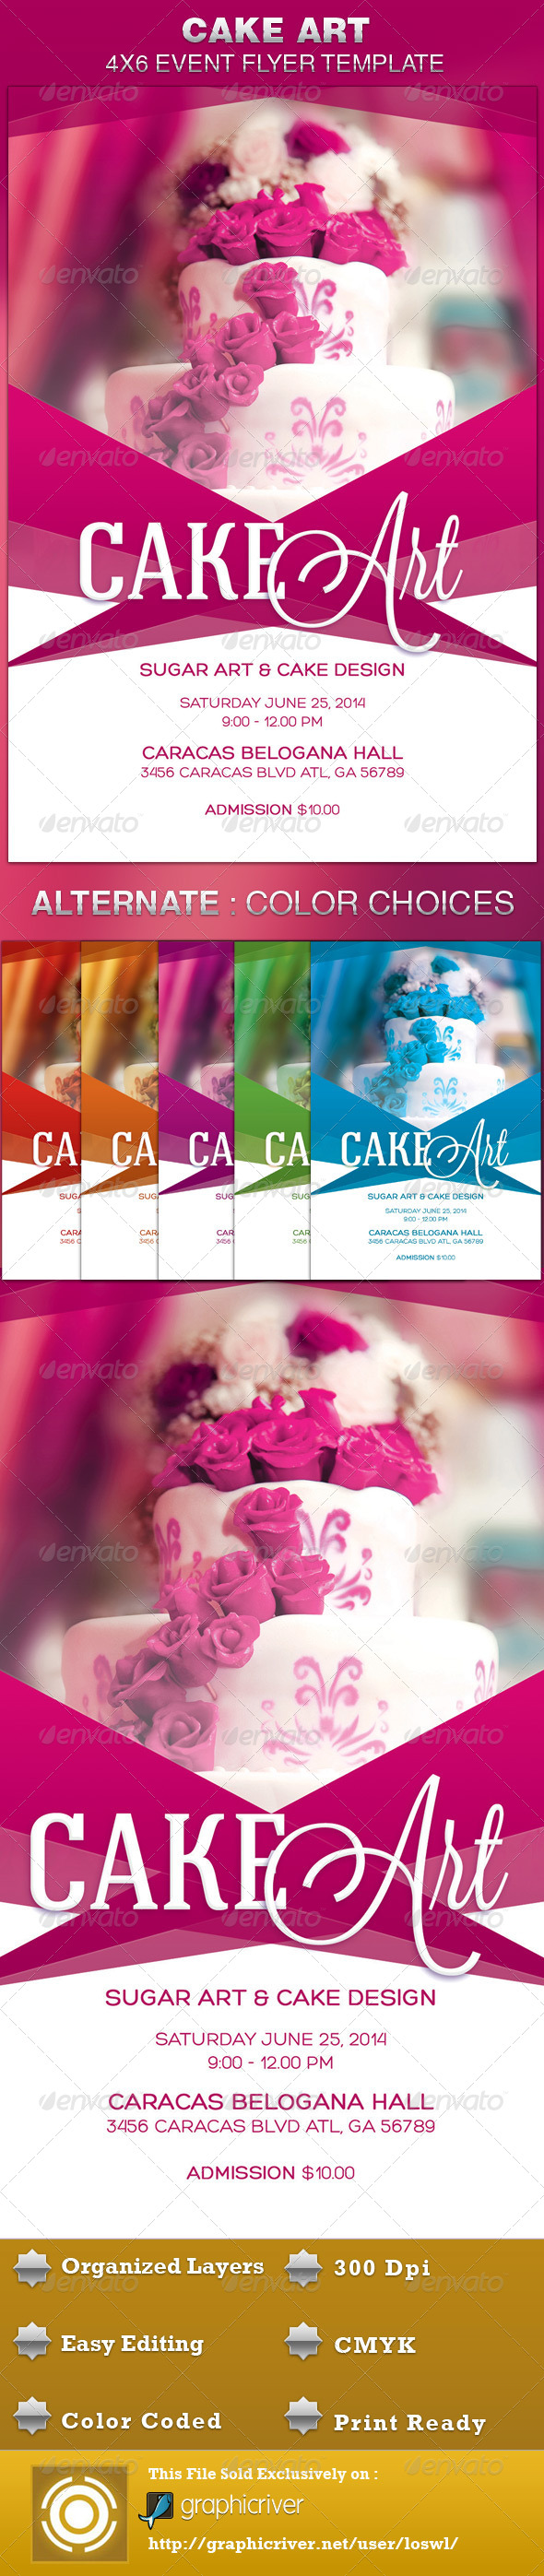 GraphicRiver Cake Art Event Flyer Template 4945744